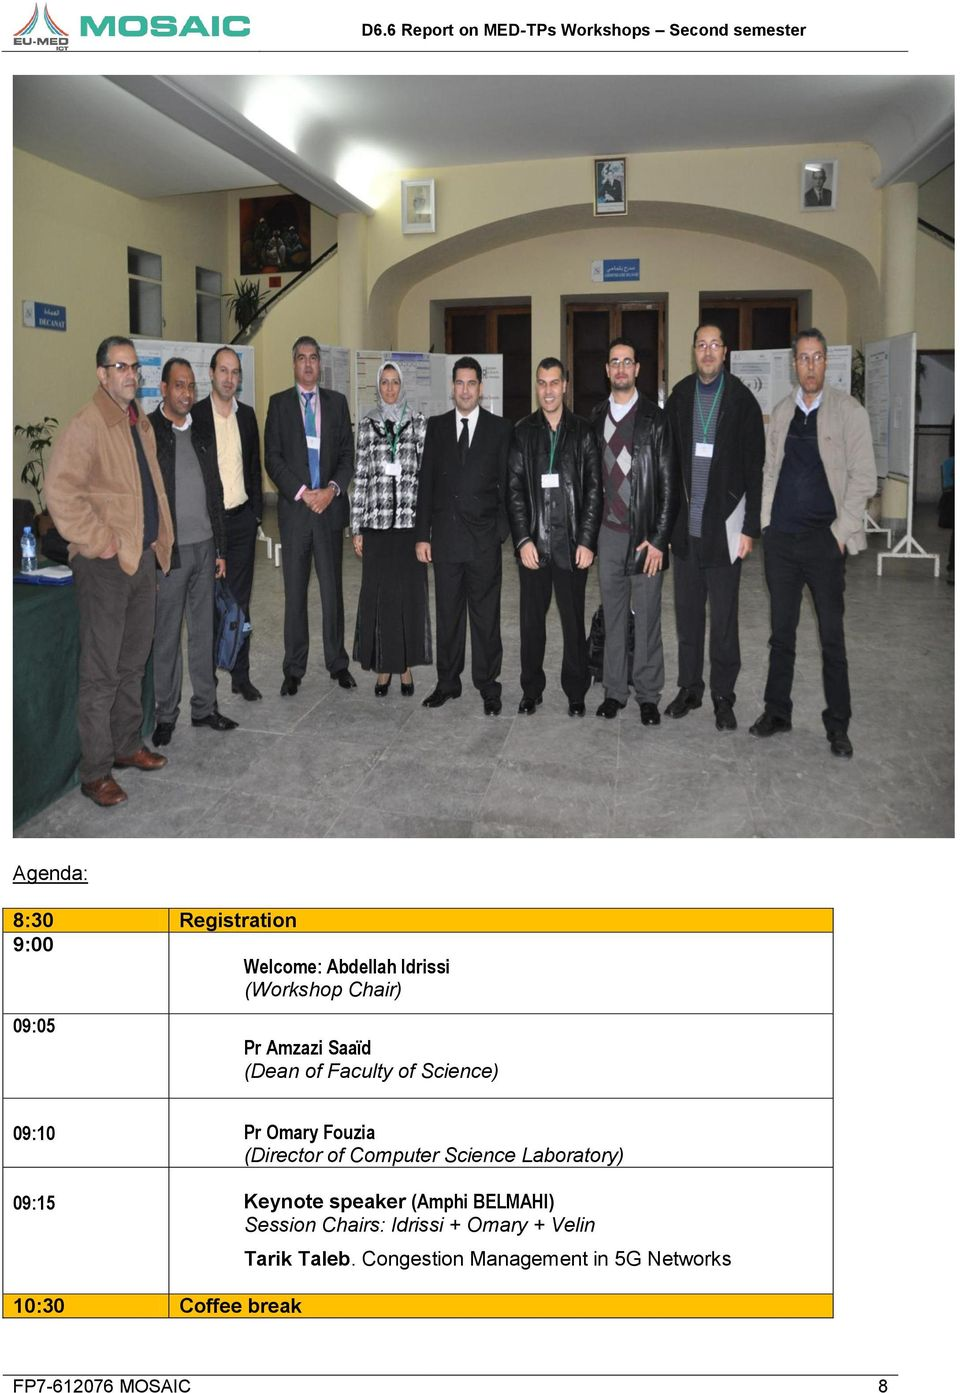 Science Laboratory) 09:15 Keynote speaker (Amphi BELMAHI) Session Chairs: Idrissi +